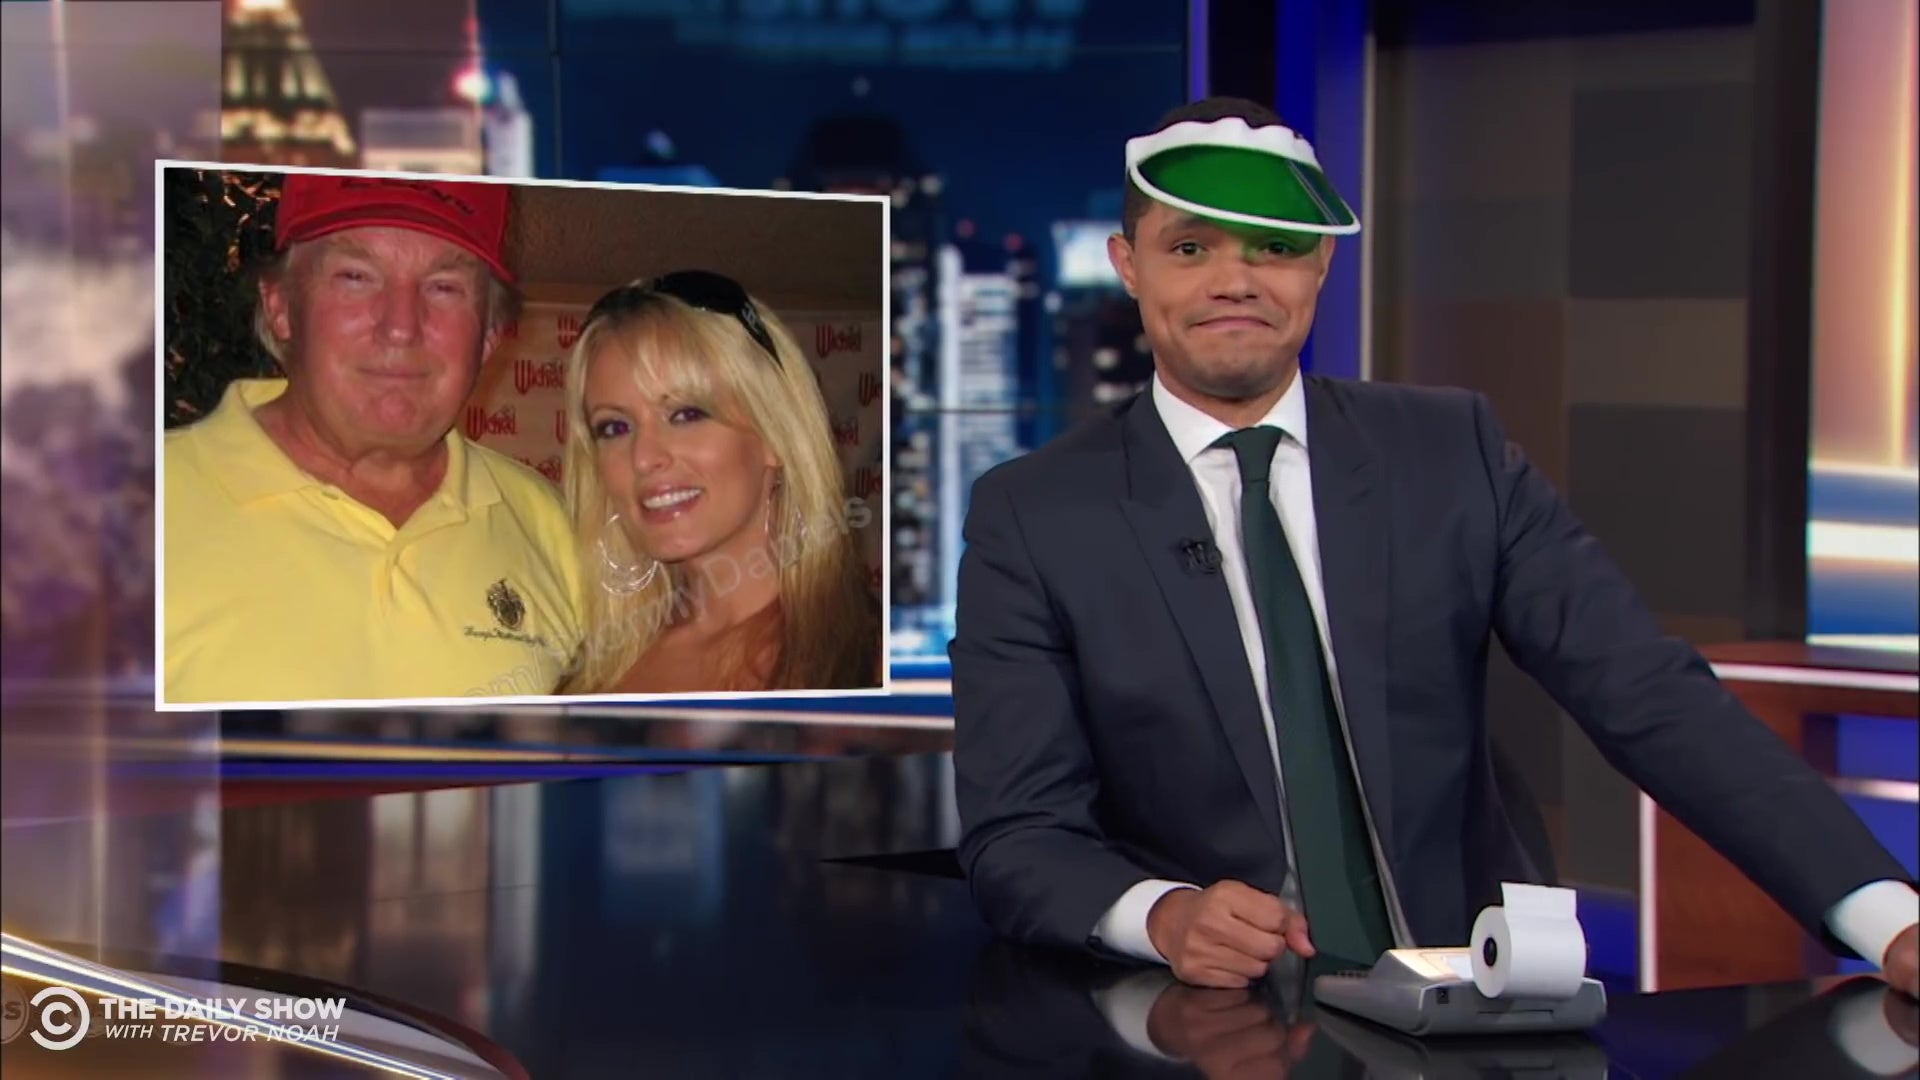 Trevor Noah, wearing an accountant's green eyeshade, in front of a picture of Trump and Stormy Daniels.